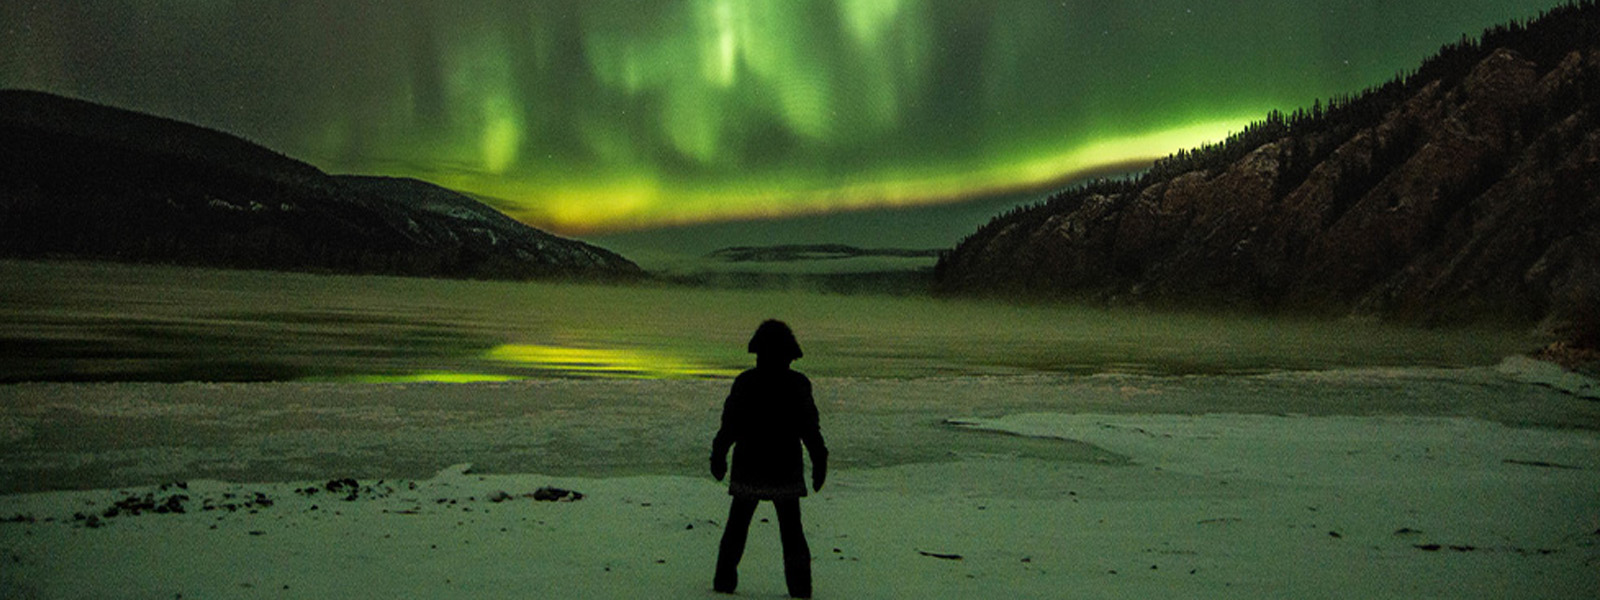 Watching the northern lights from the river